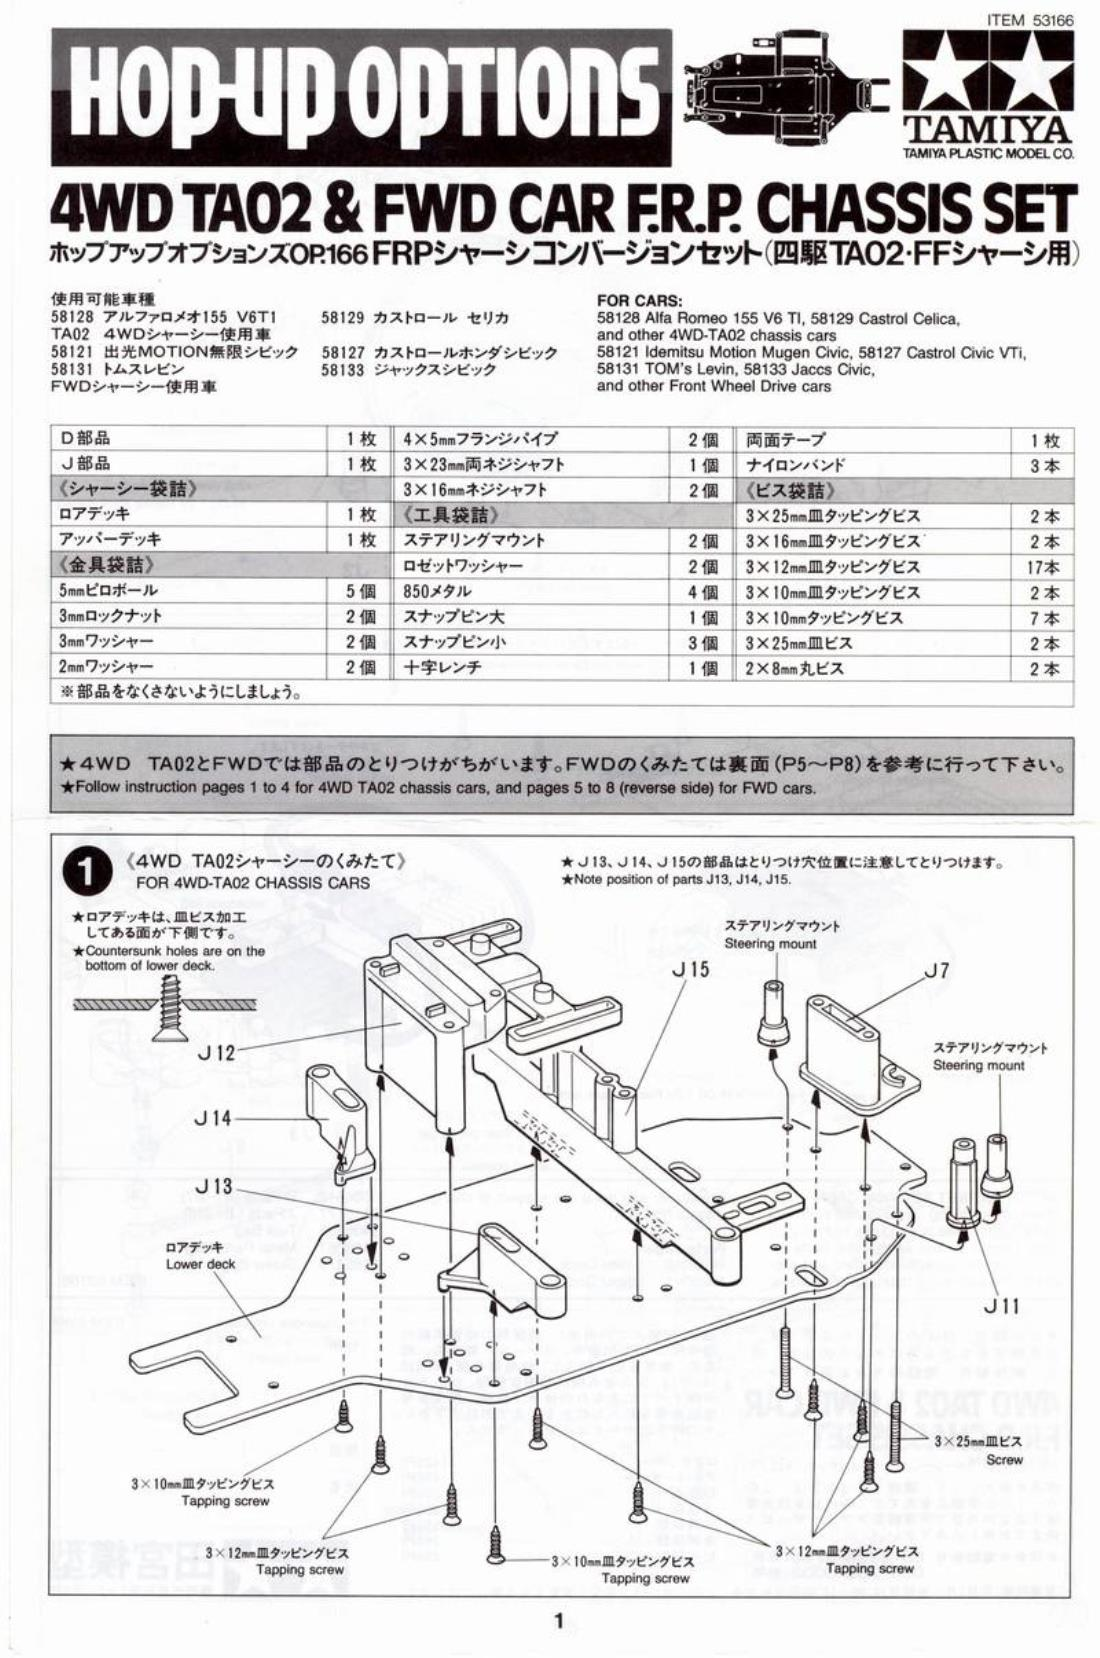 hight resolution of 53166 rc frp chassis set manual 4wd ta02 fwd car